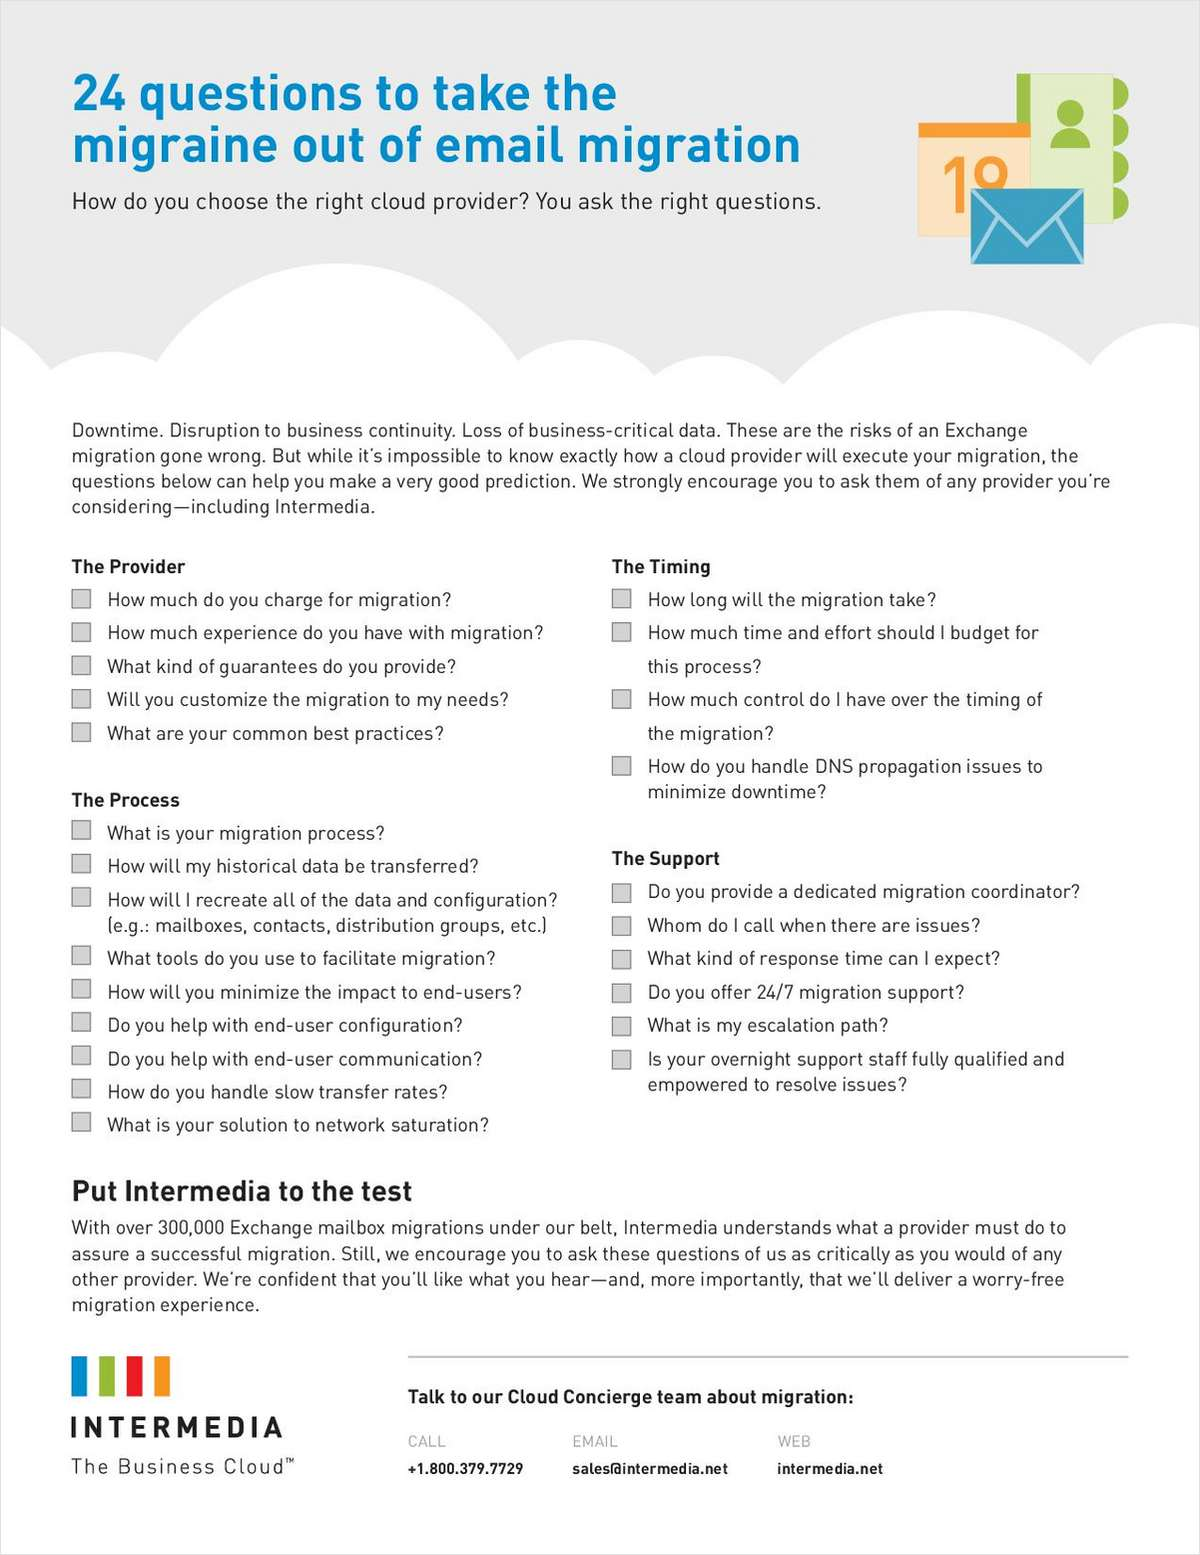 24 Questions To Take The Migraine Out Of Email Migration